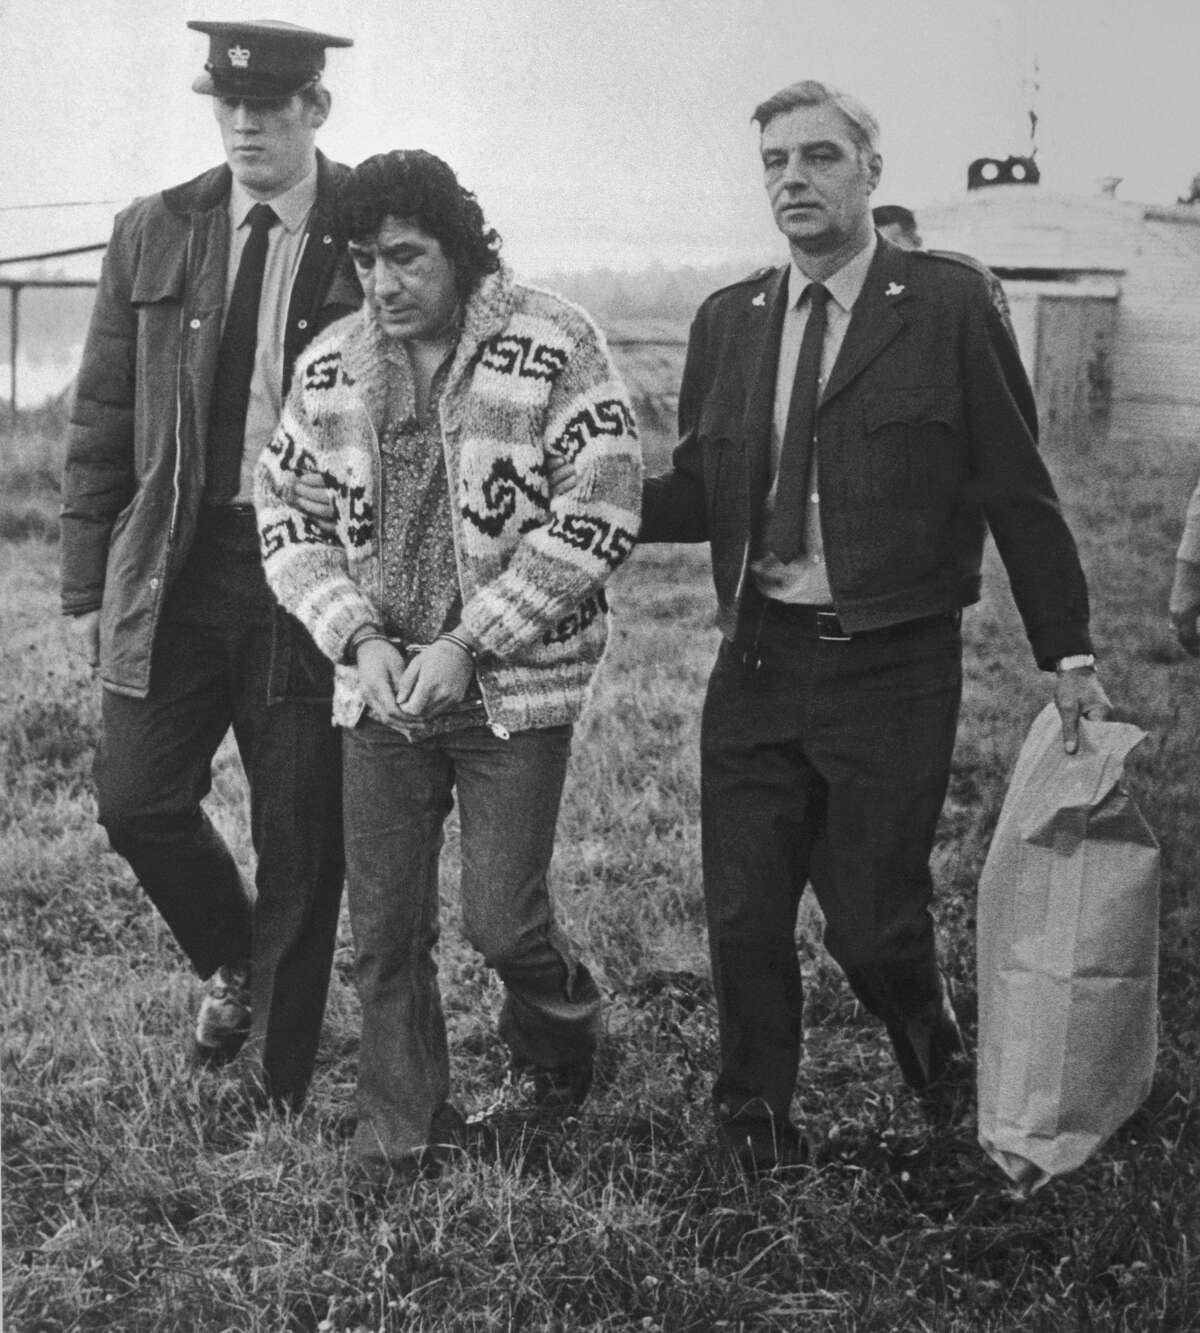 (Original Caption) Leonard Peltier, American Indian Movement leader, is led across Okalla prison exercise yard to a waiting helicopter. After a prolonged legal battle, Peltier was ordered deported by Canadian Justice Minister Ron Basford to face charges of murdering two FBI agents.